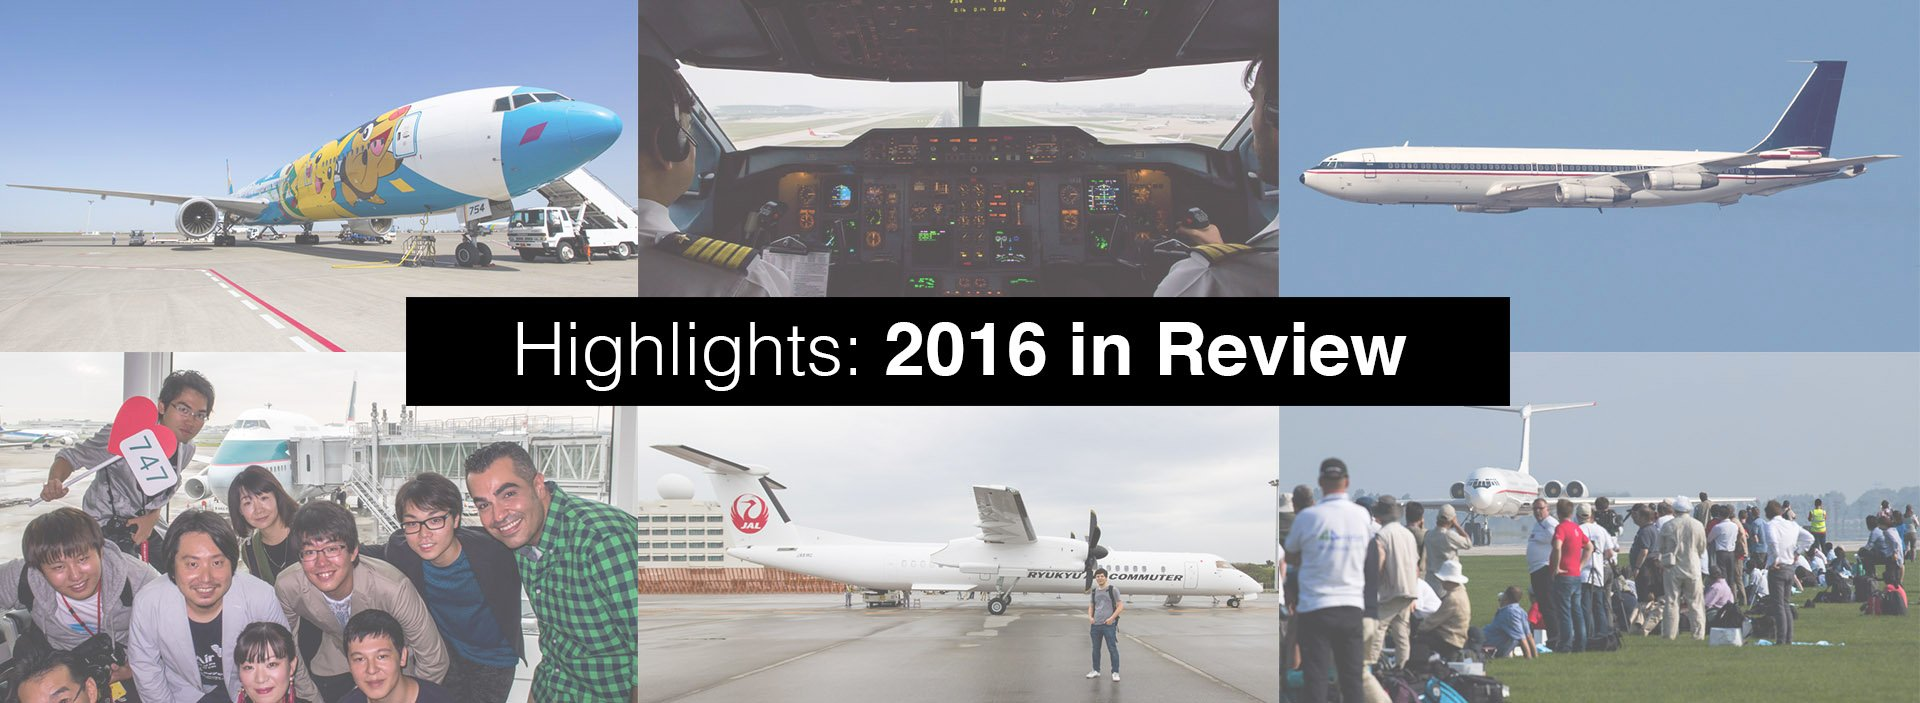 Highlights: 2016 in Review